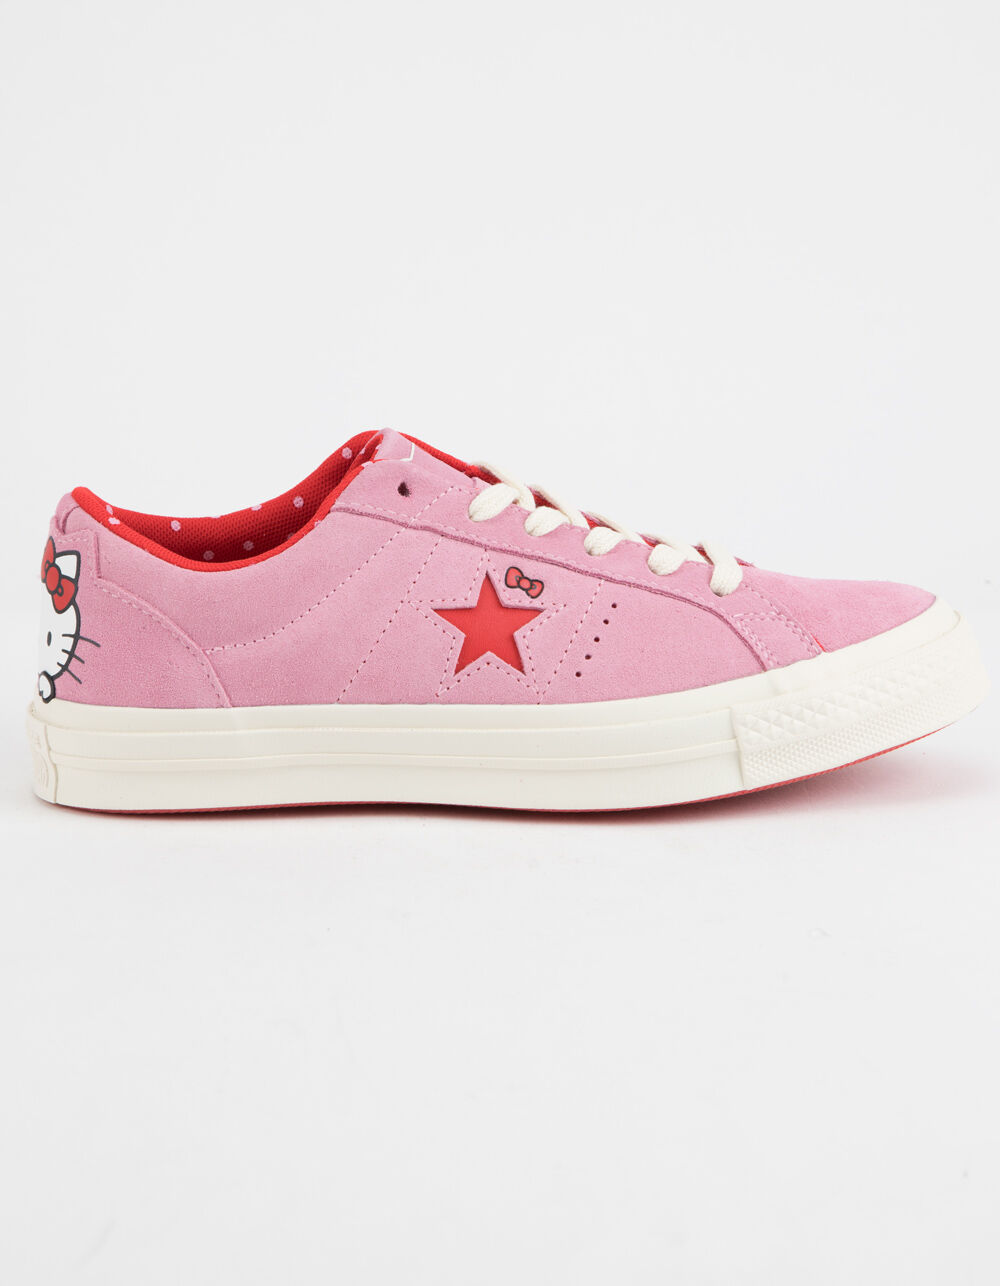 CONVERSE x Hello Kitty One Star Prism Pink & Firey Red Shoes